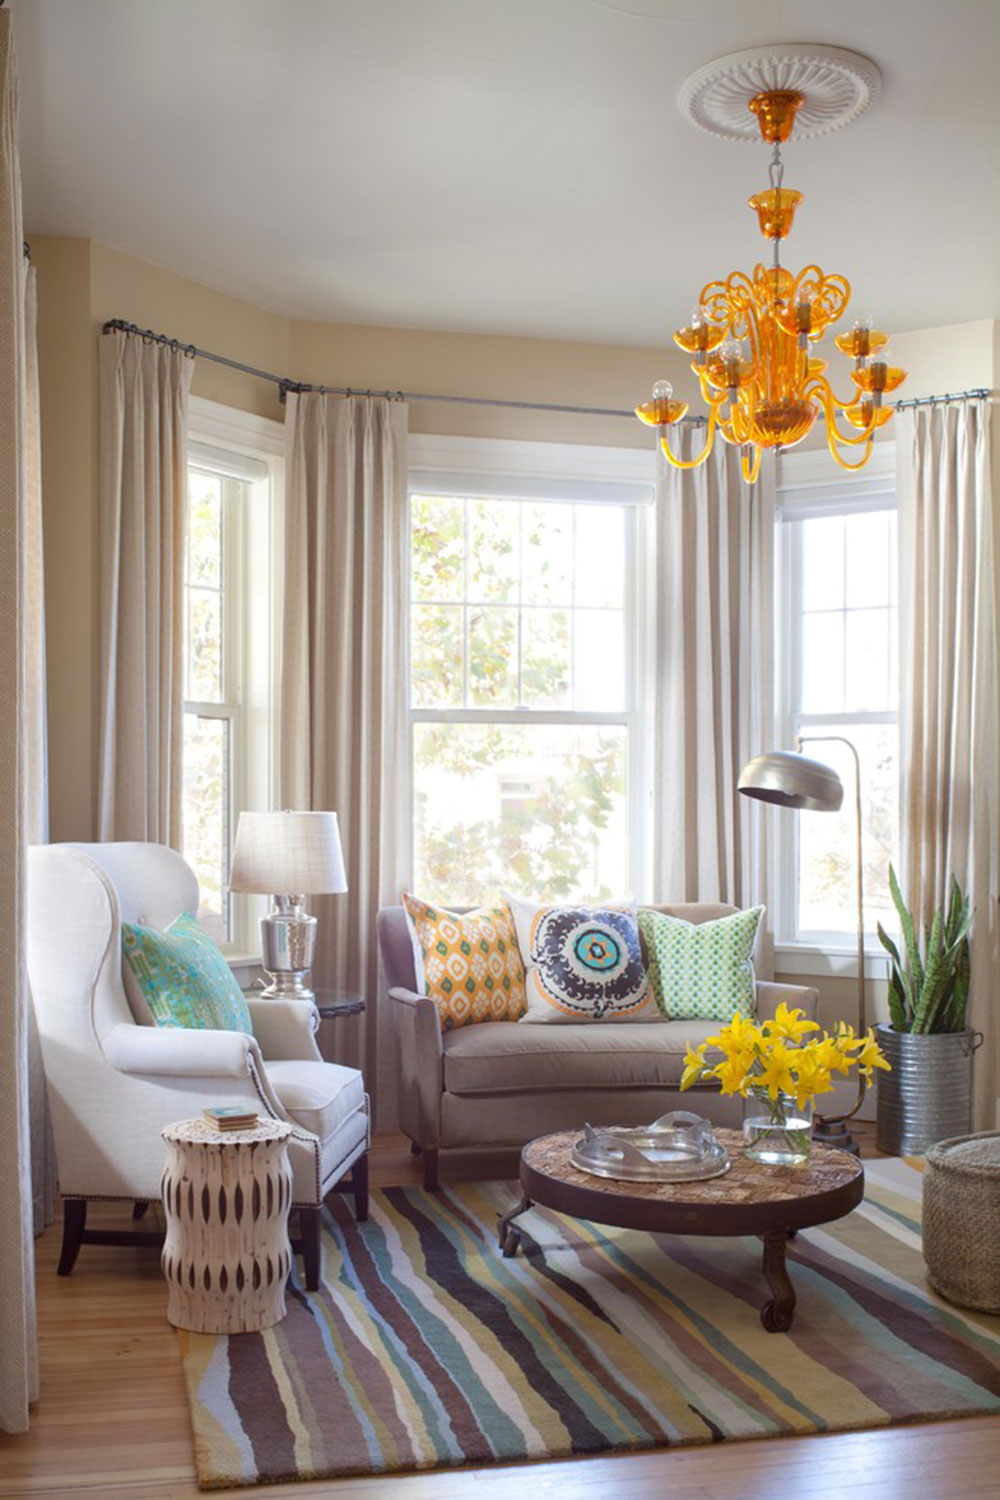 Homey Feelings With These Bay Window Decor 10 Bay